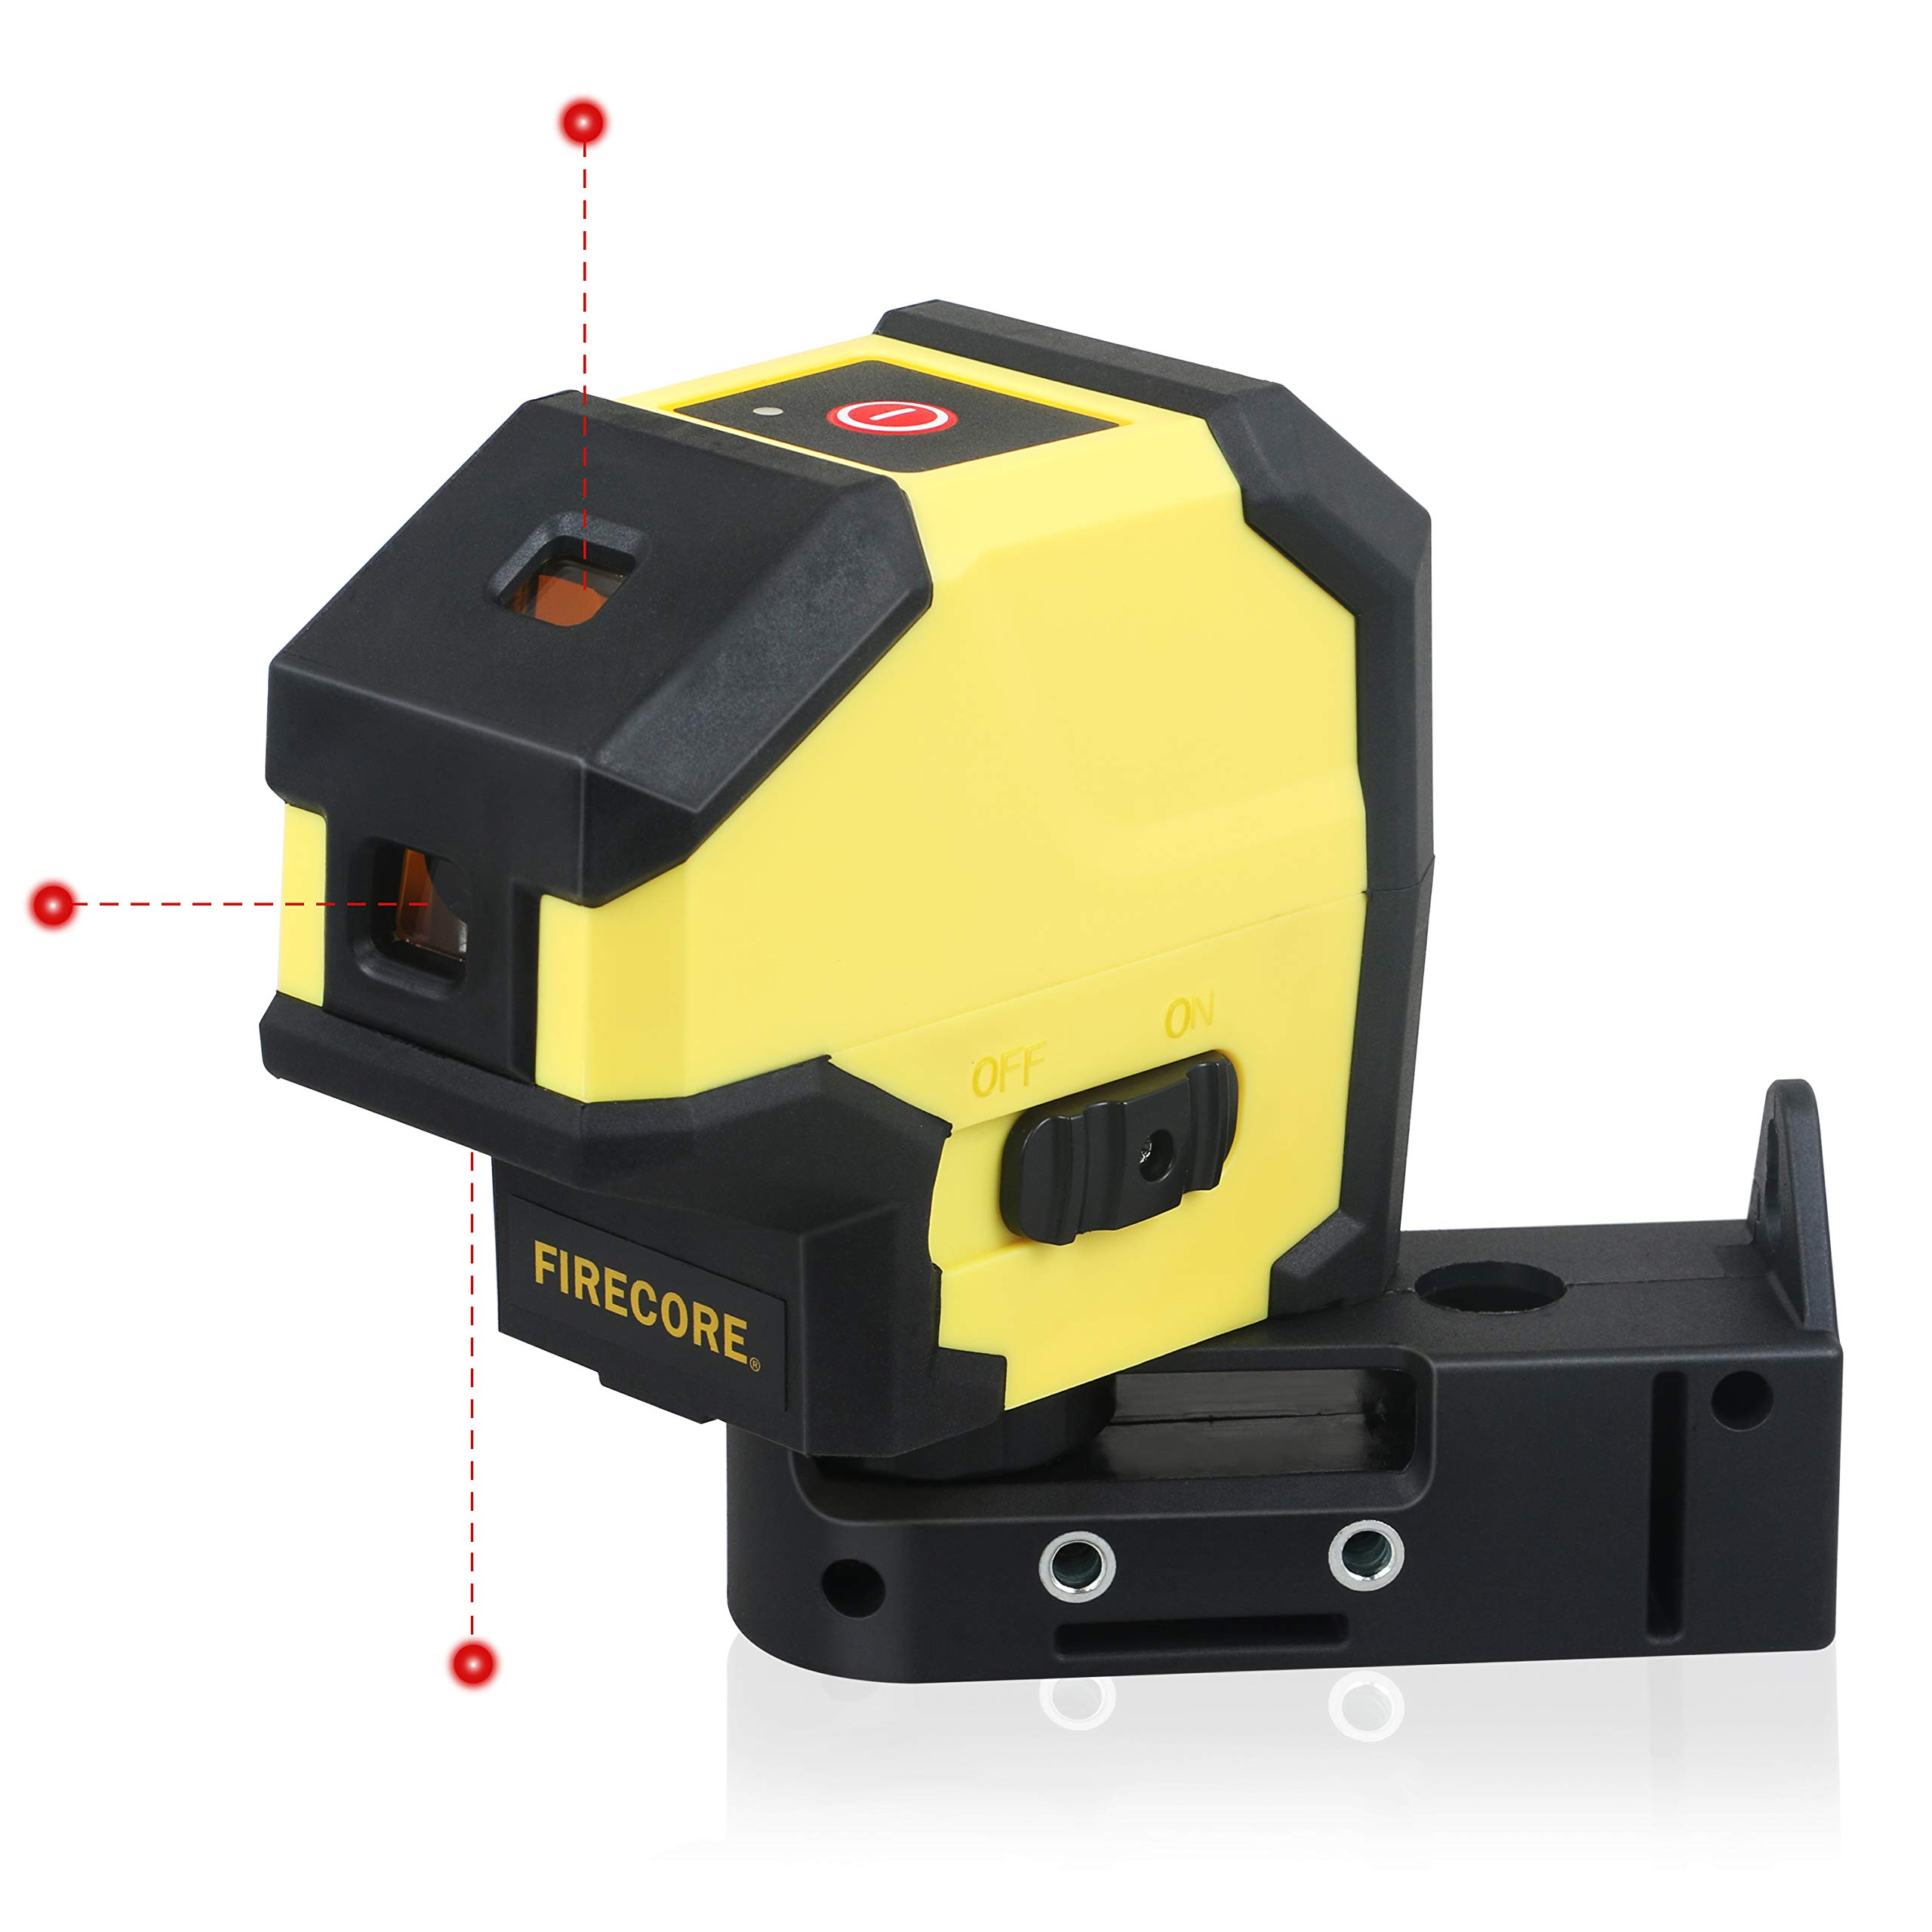 New Firecore Laser Plumb Bob 3 Point Red Beam Alignment Laser FP-3R